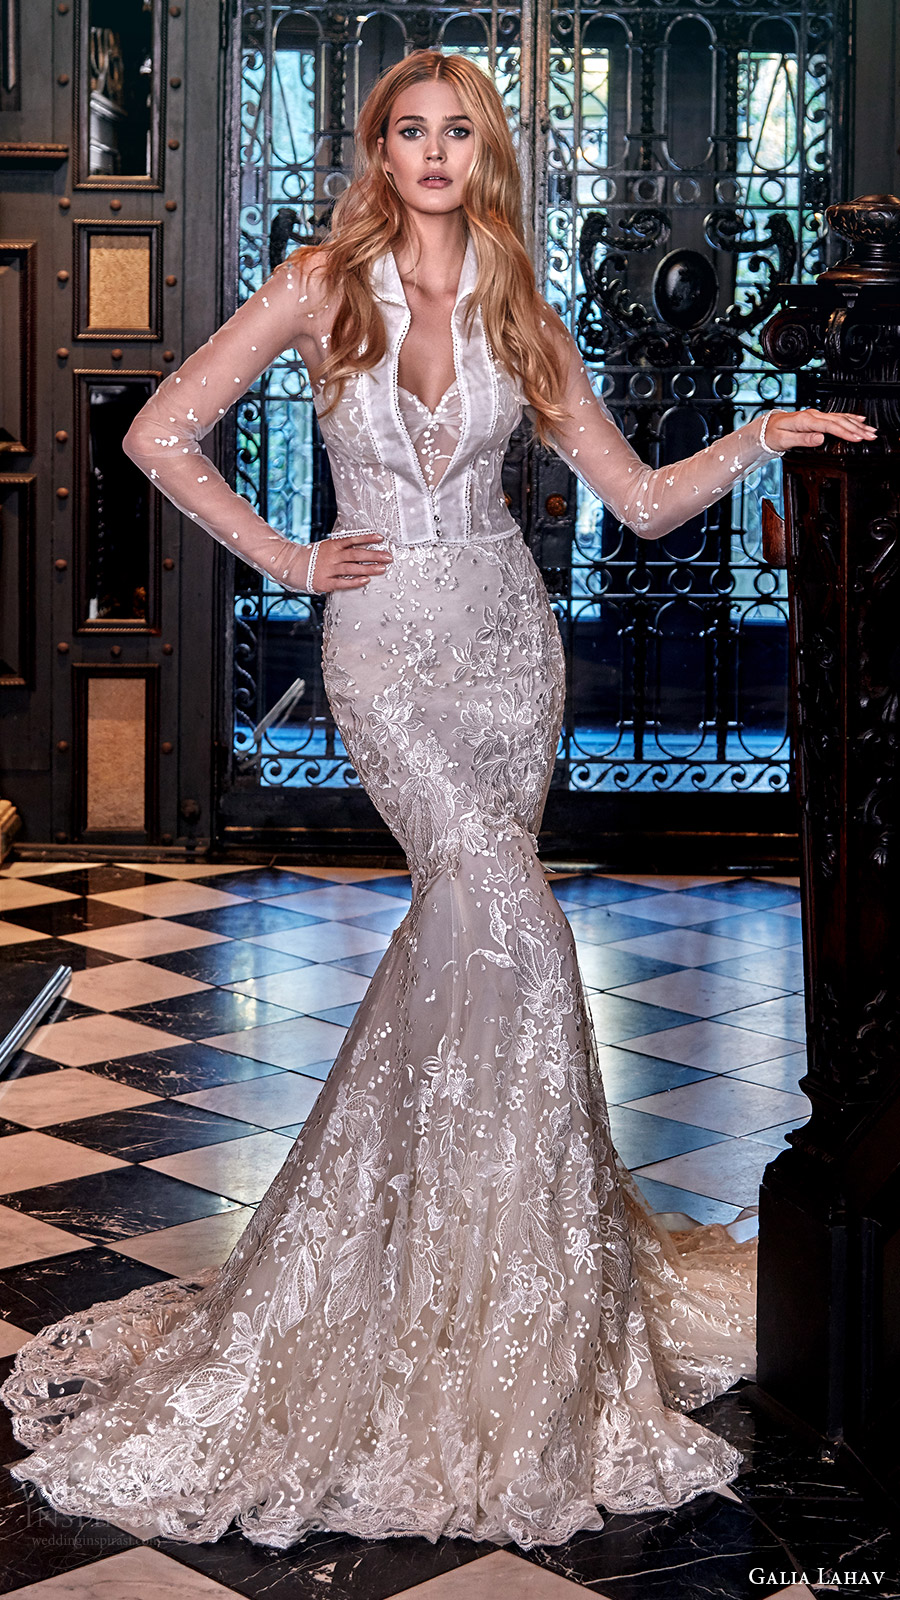 galia lahav bridal spring 2017 strapless sweetheart mermaid fit flare lace wedding dress (lidya) fv train jacket